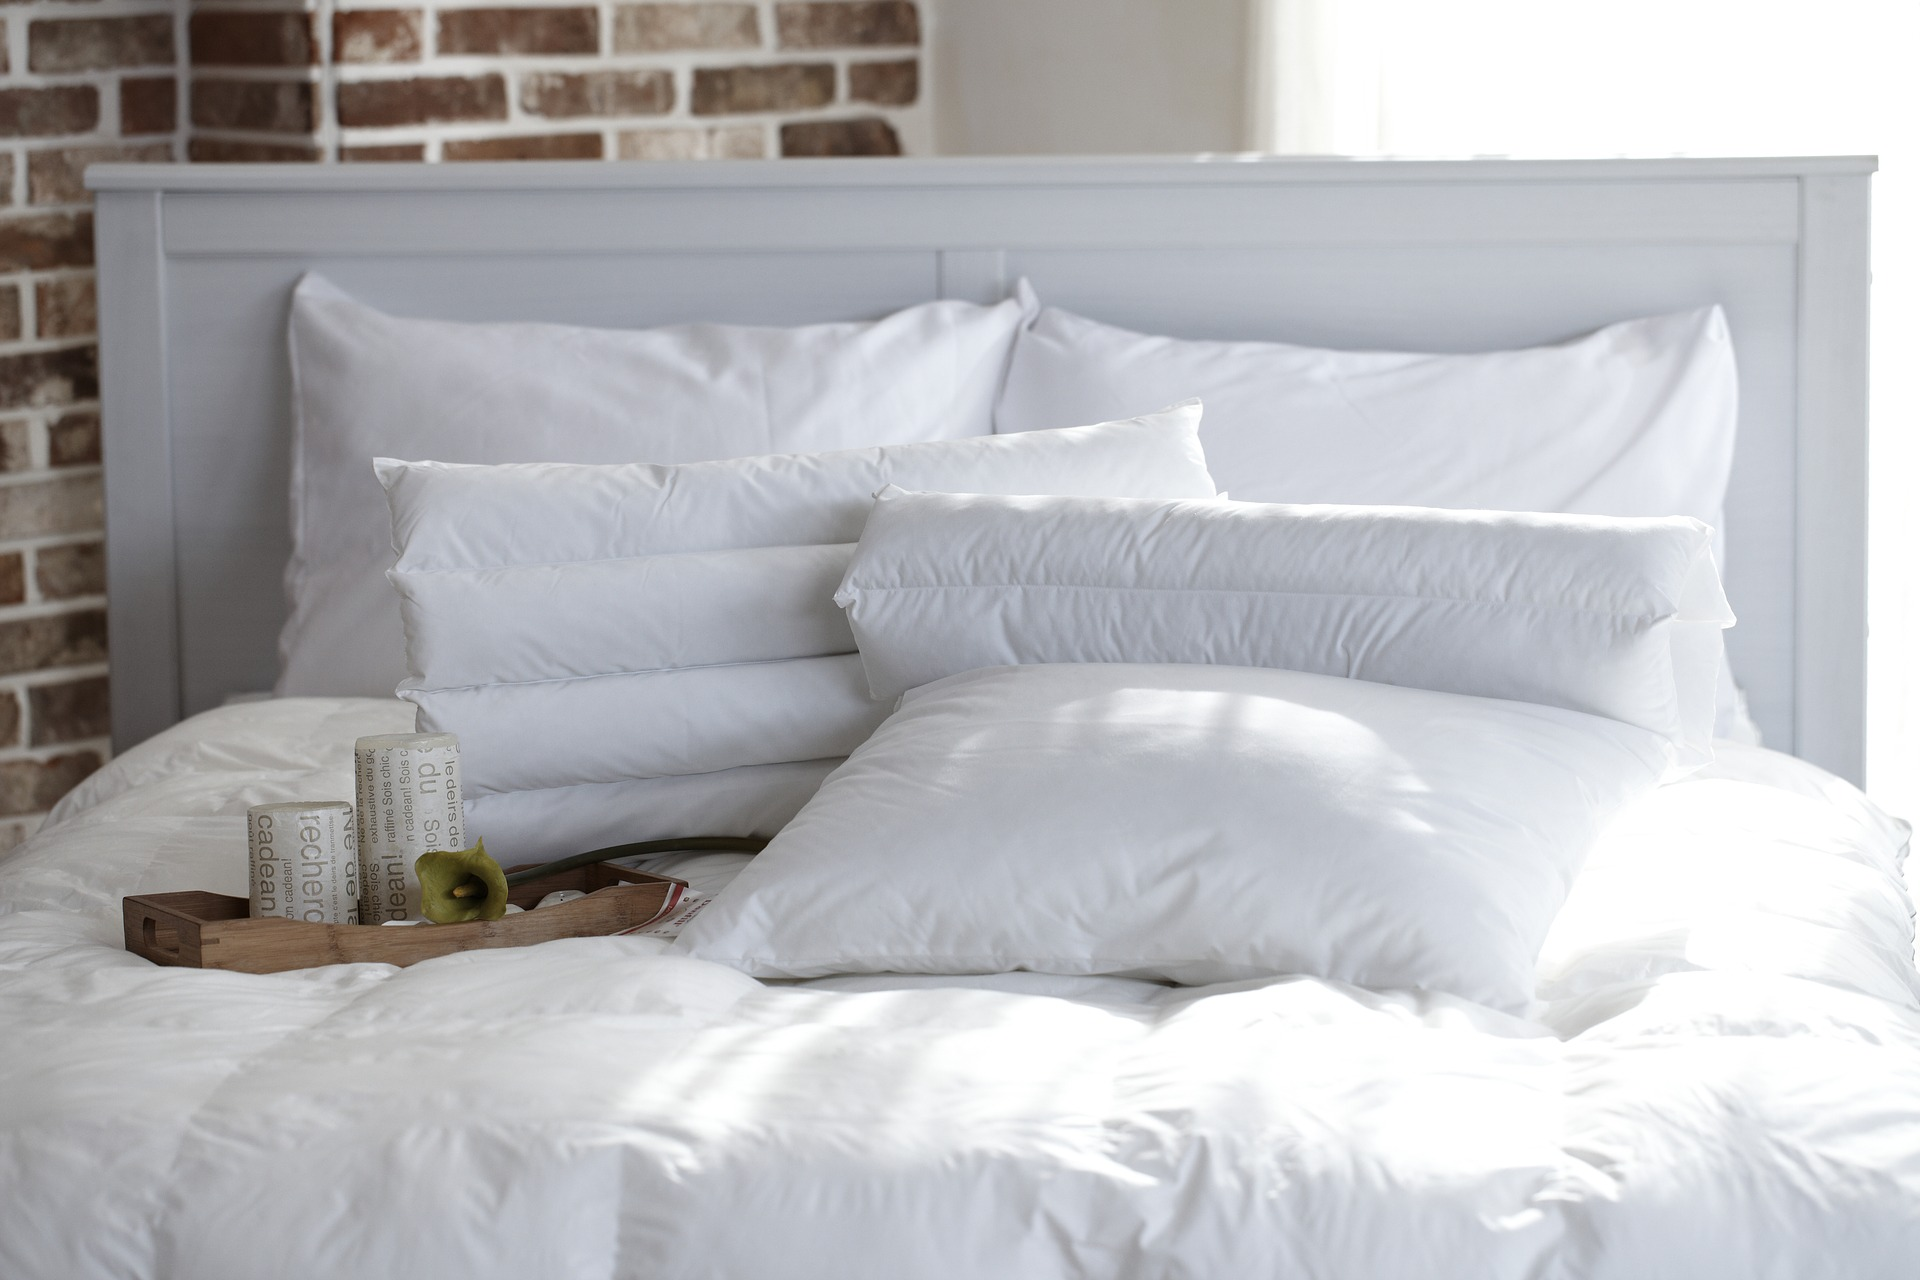 memory foam pillows on bed